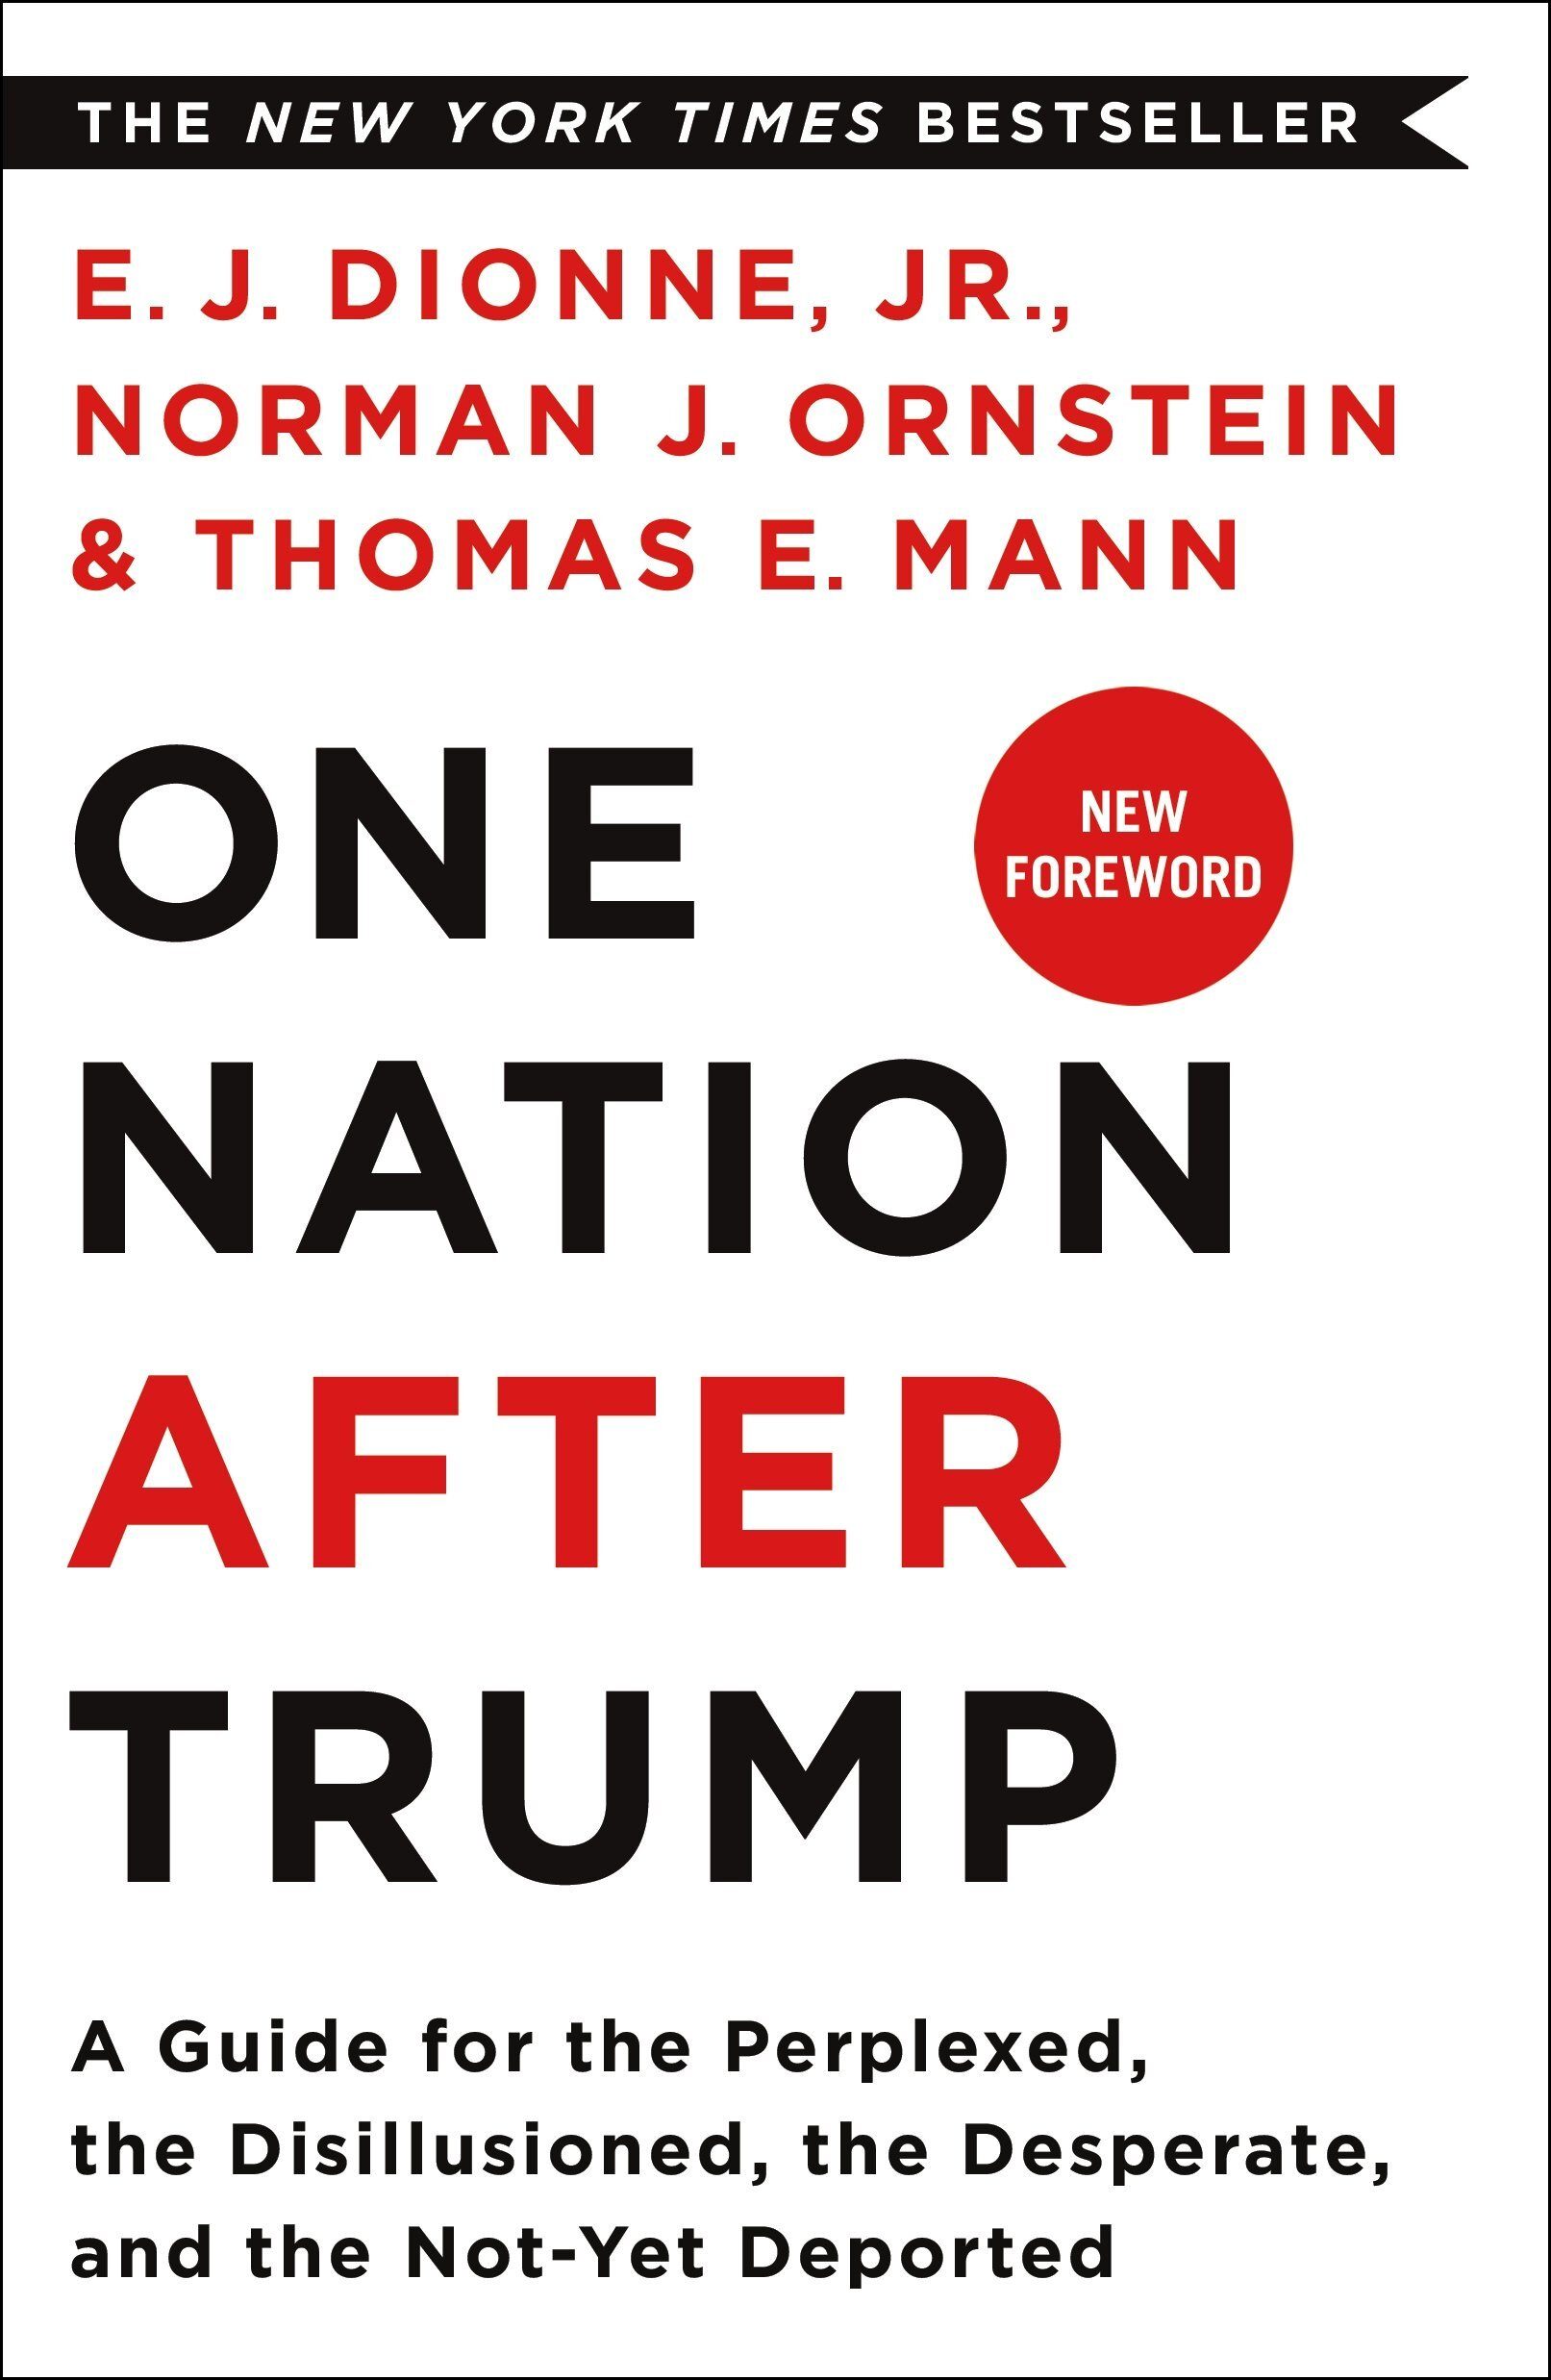 Book Cover 3 - One Nation After Trump .jpg